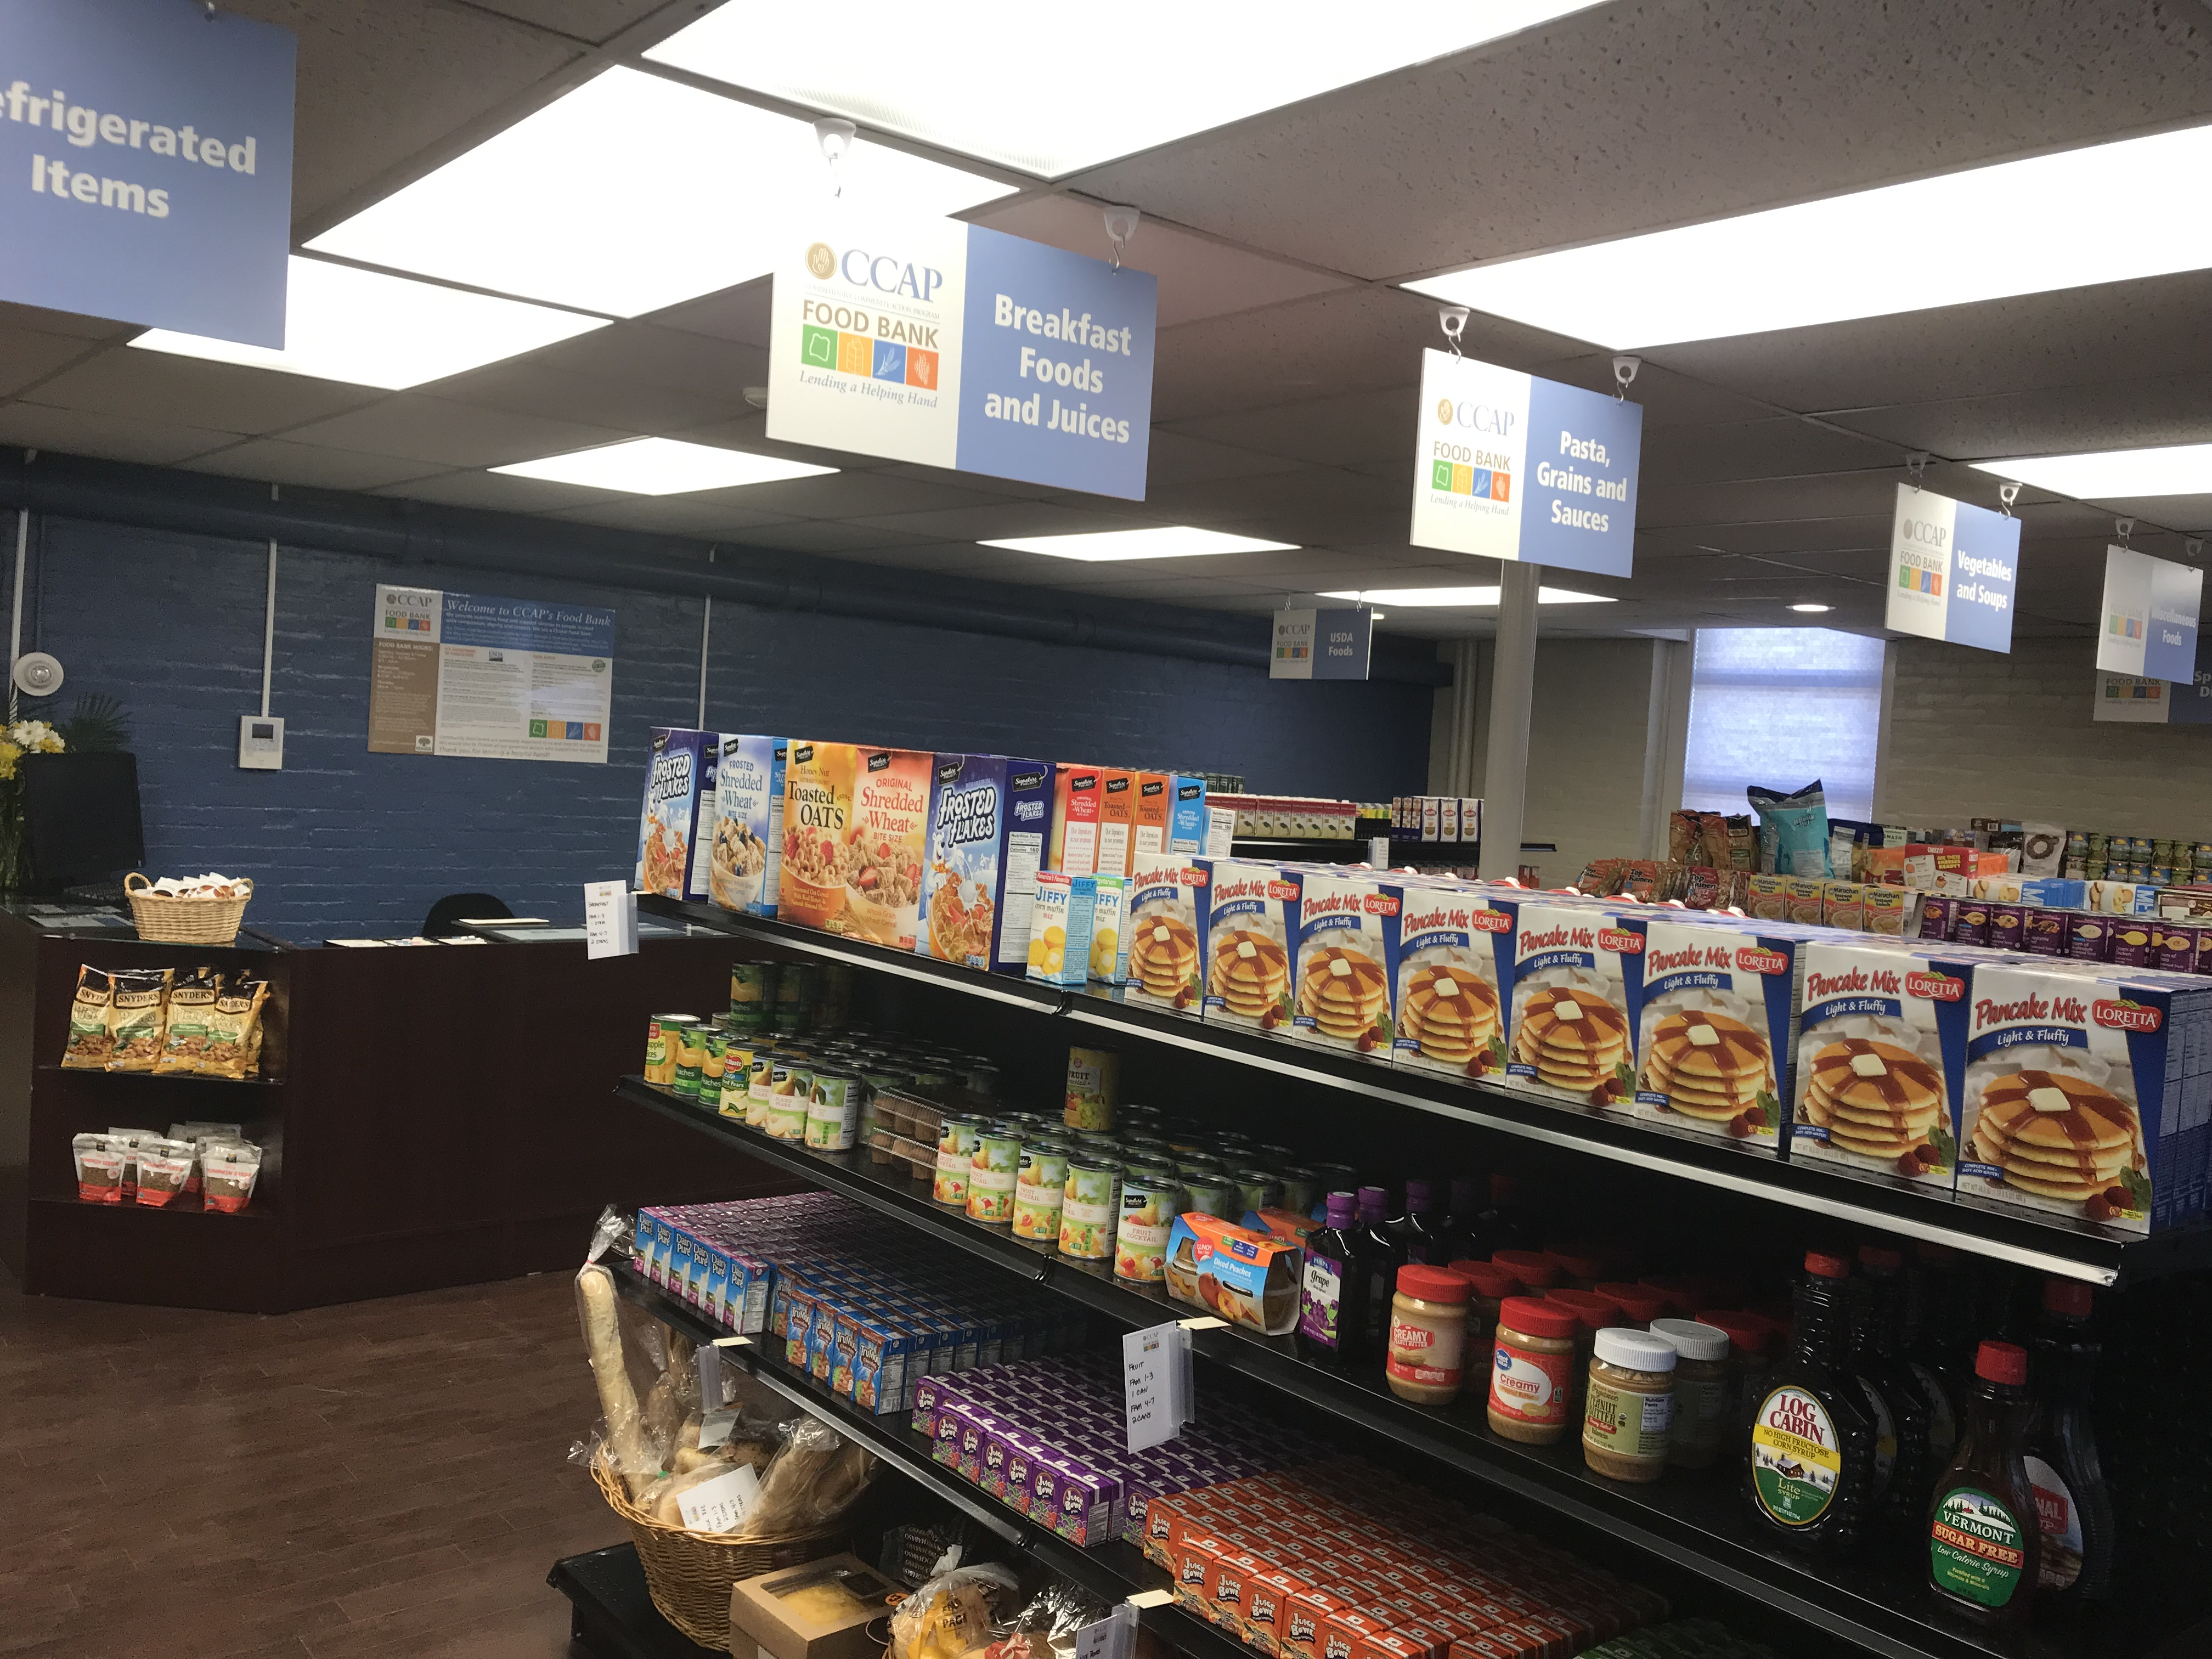 THE NEWLY EXPANDED Choice Food Bank at Comprehensive Community Action Program offers clients the opportunity to select foods they like in a grocery store-type setting./ COURTESY COMPREHENSIVE COMMUNITY ACTION PROGRAM